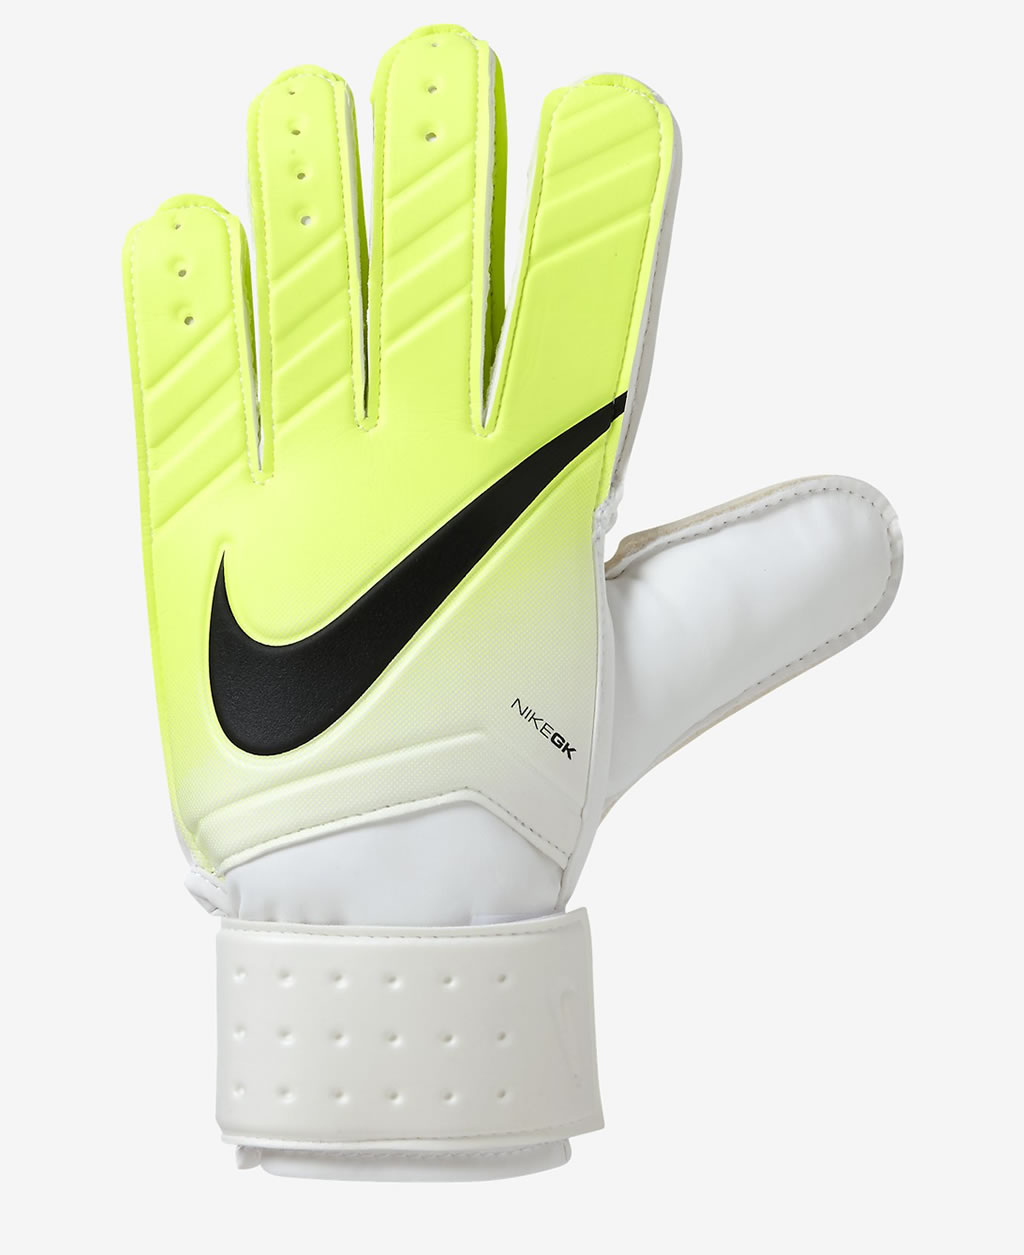 Nike Match Goalkeeper Soccer Gloves